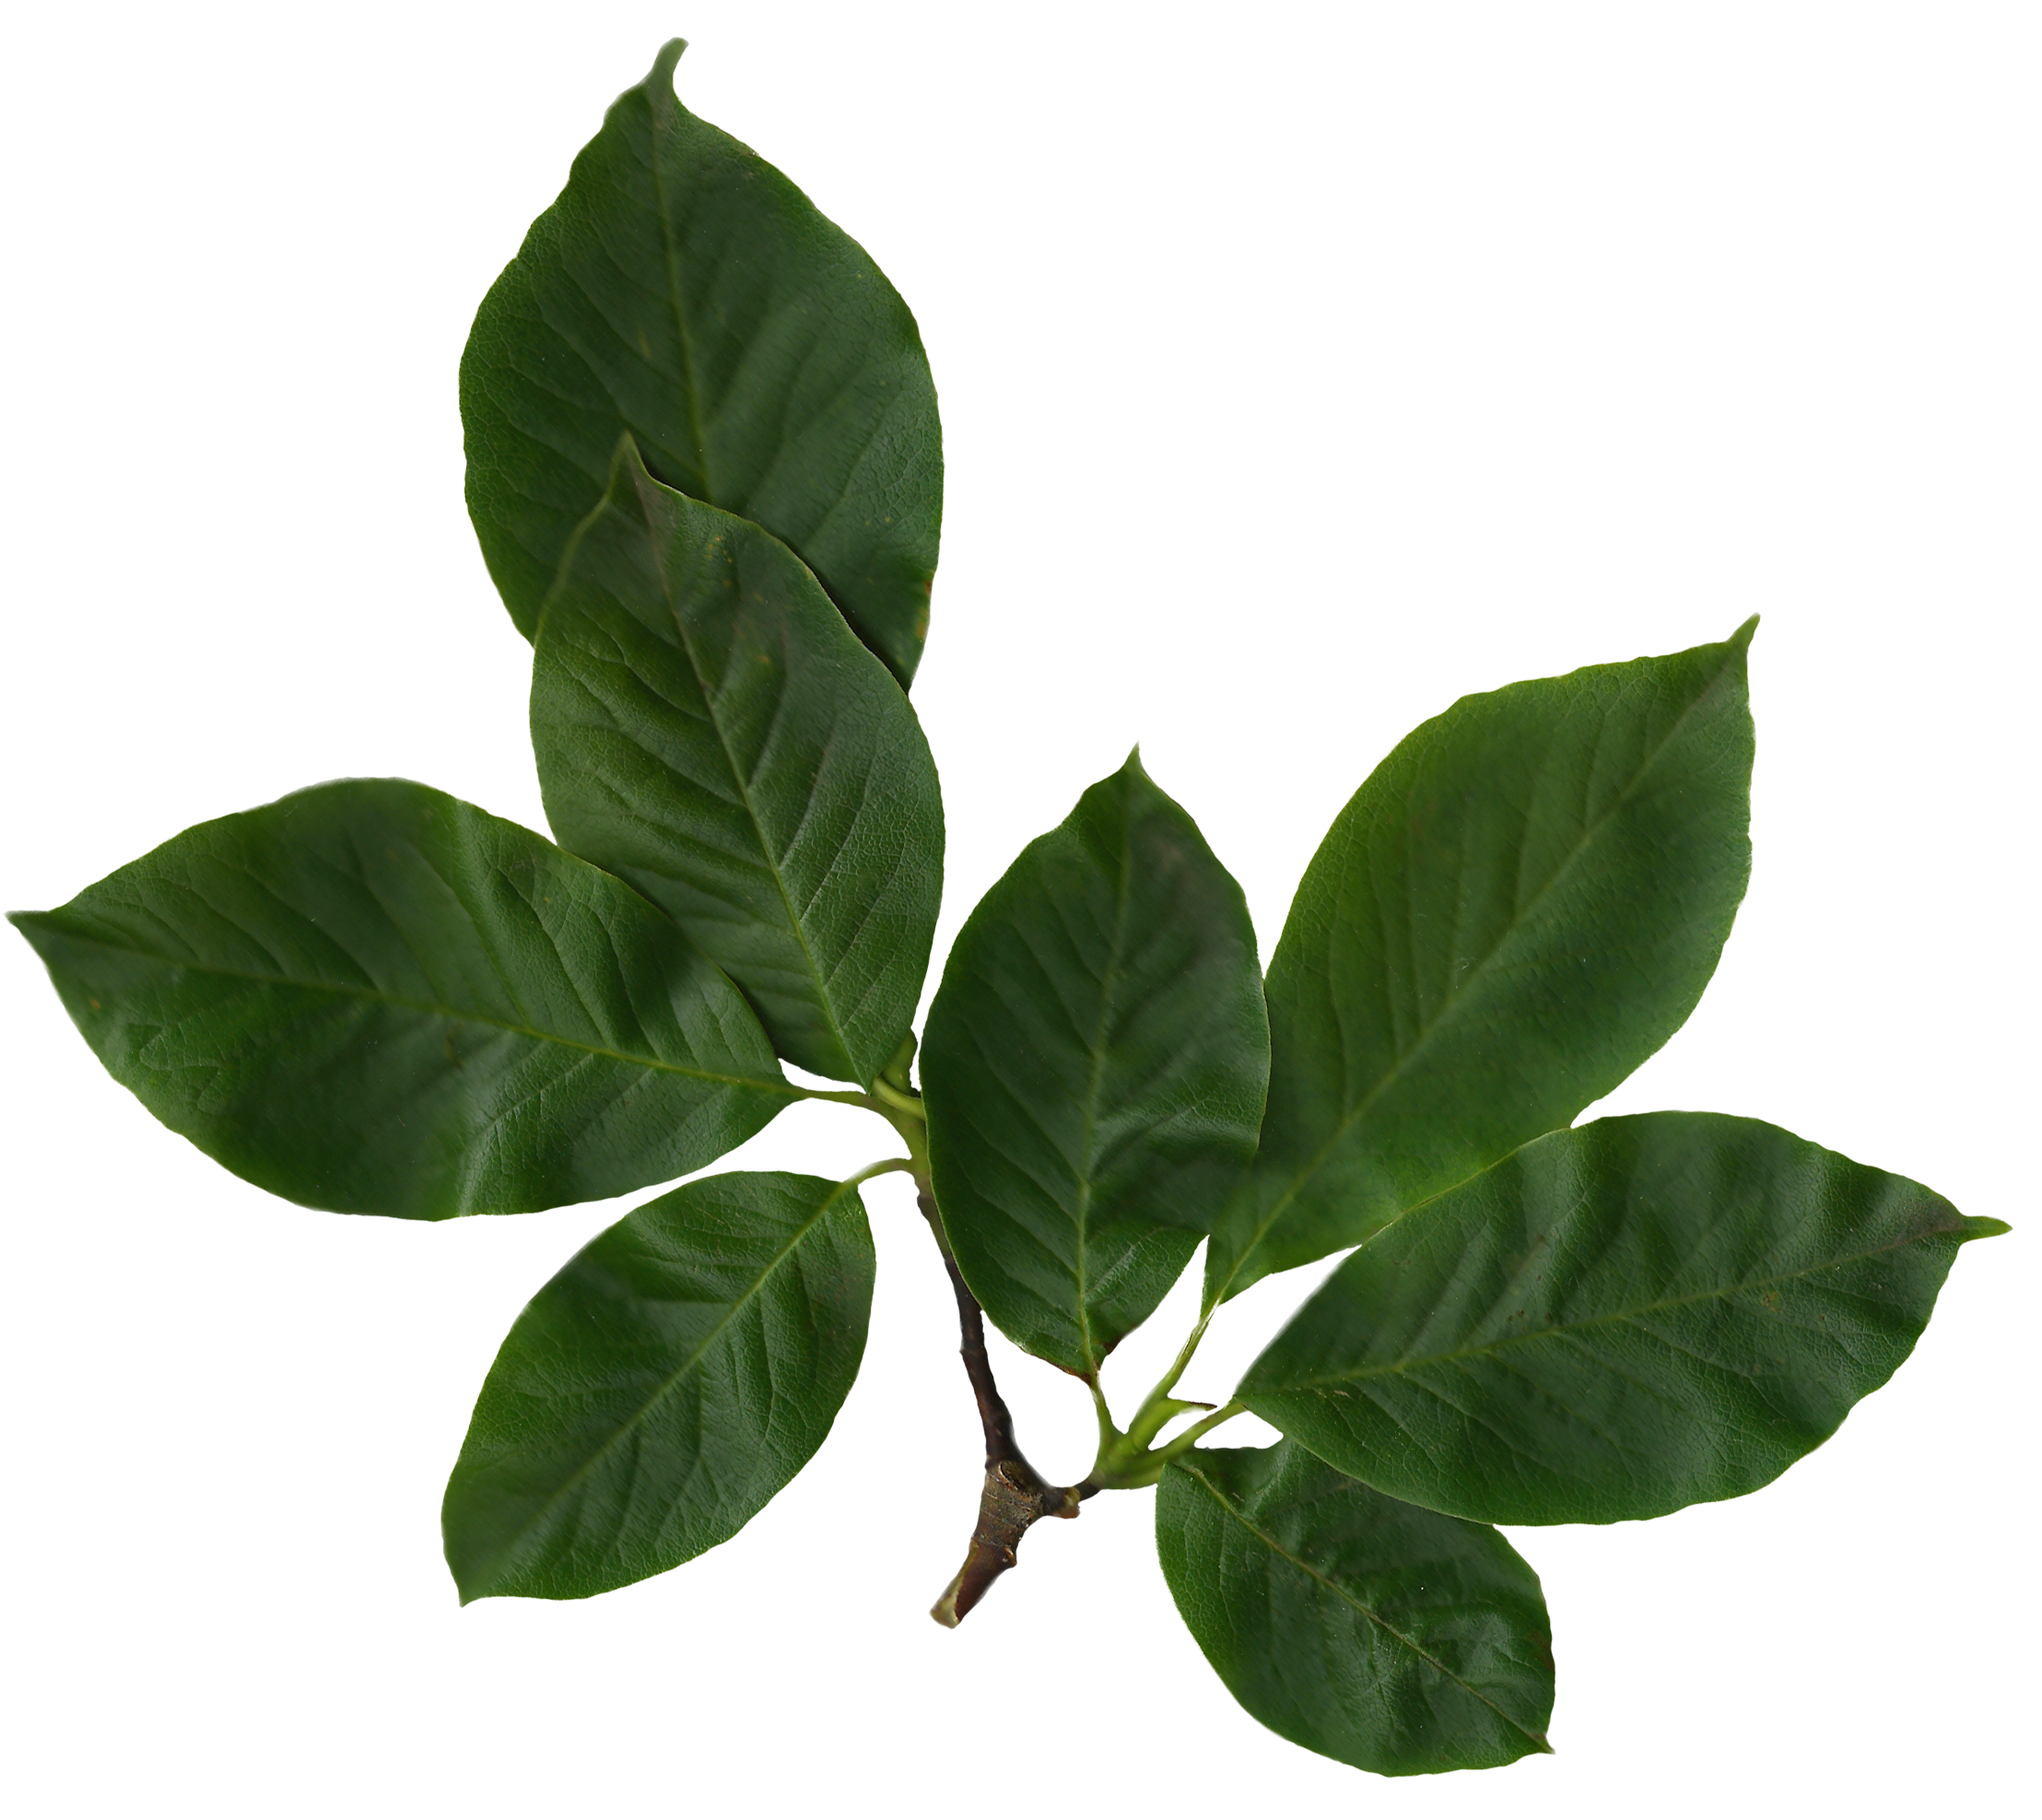 File:Magnolia soulangiana scanned leaves.png - Wikimedia Commons